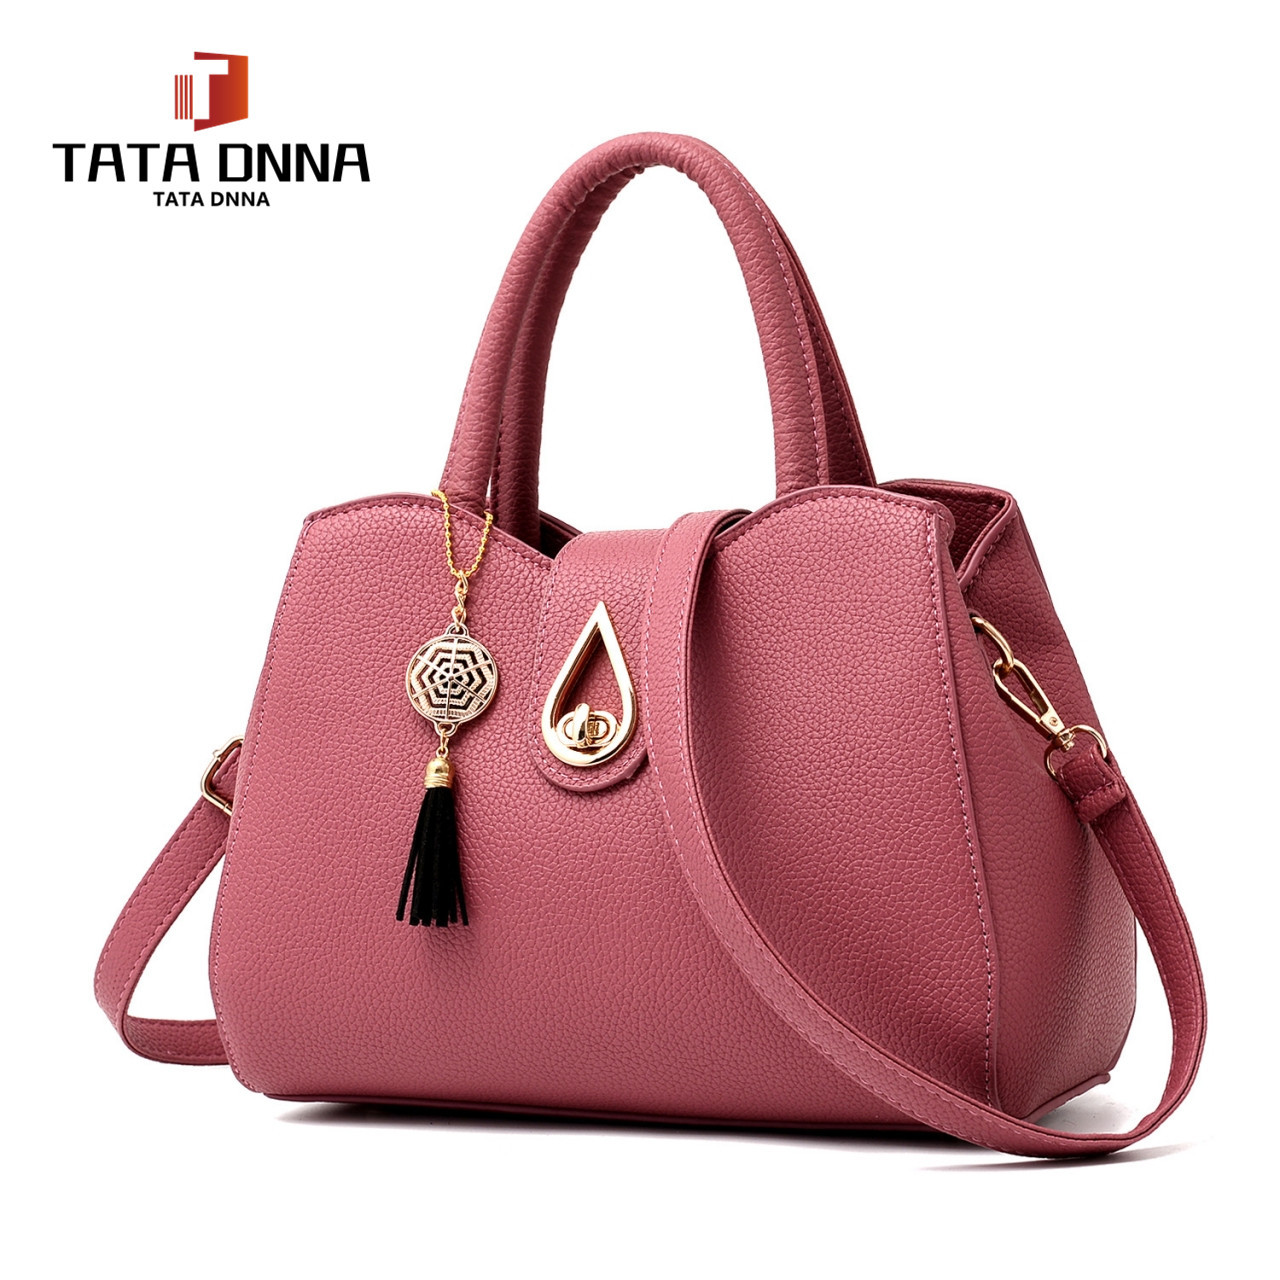 Promotion of new women's bags,Patent Leather Women Bag Ladies Cross Body Shoulder Bags Handbags Blue one size 11